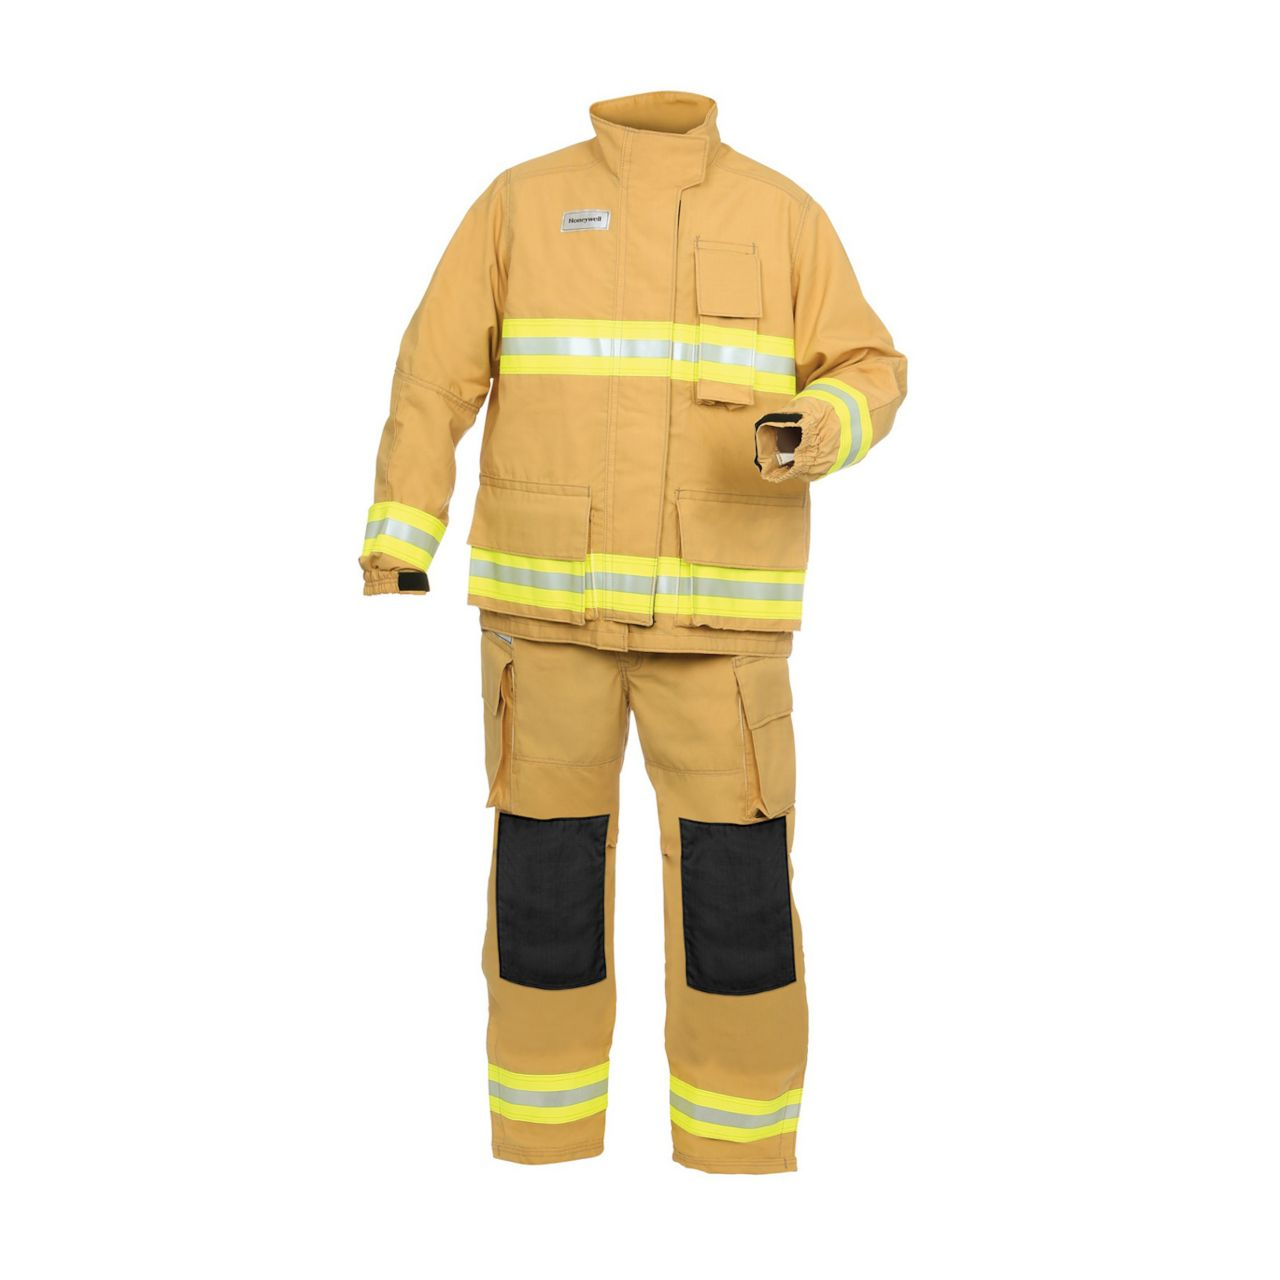 HIS-product-bycategory-firstresponder-hfr-gear-mr2-full-suit-9010-high-res